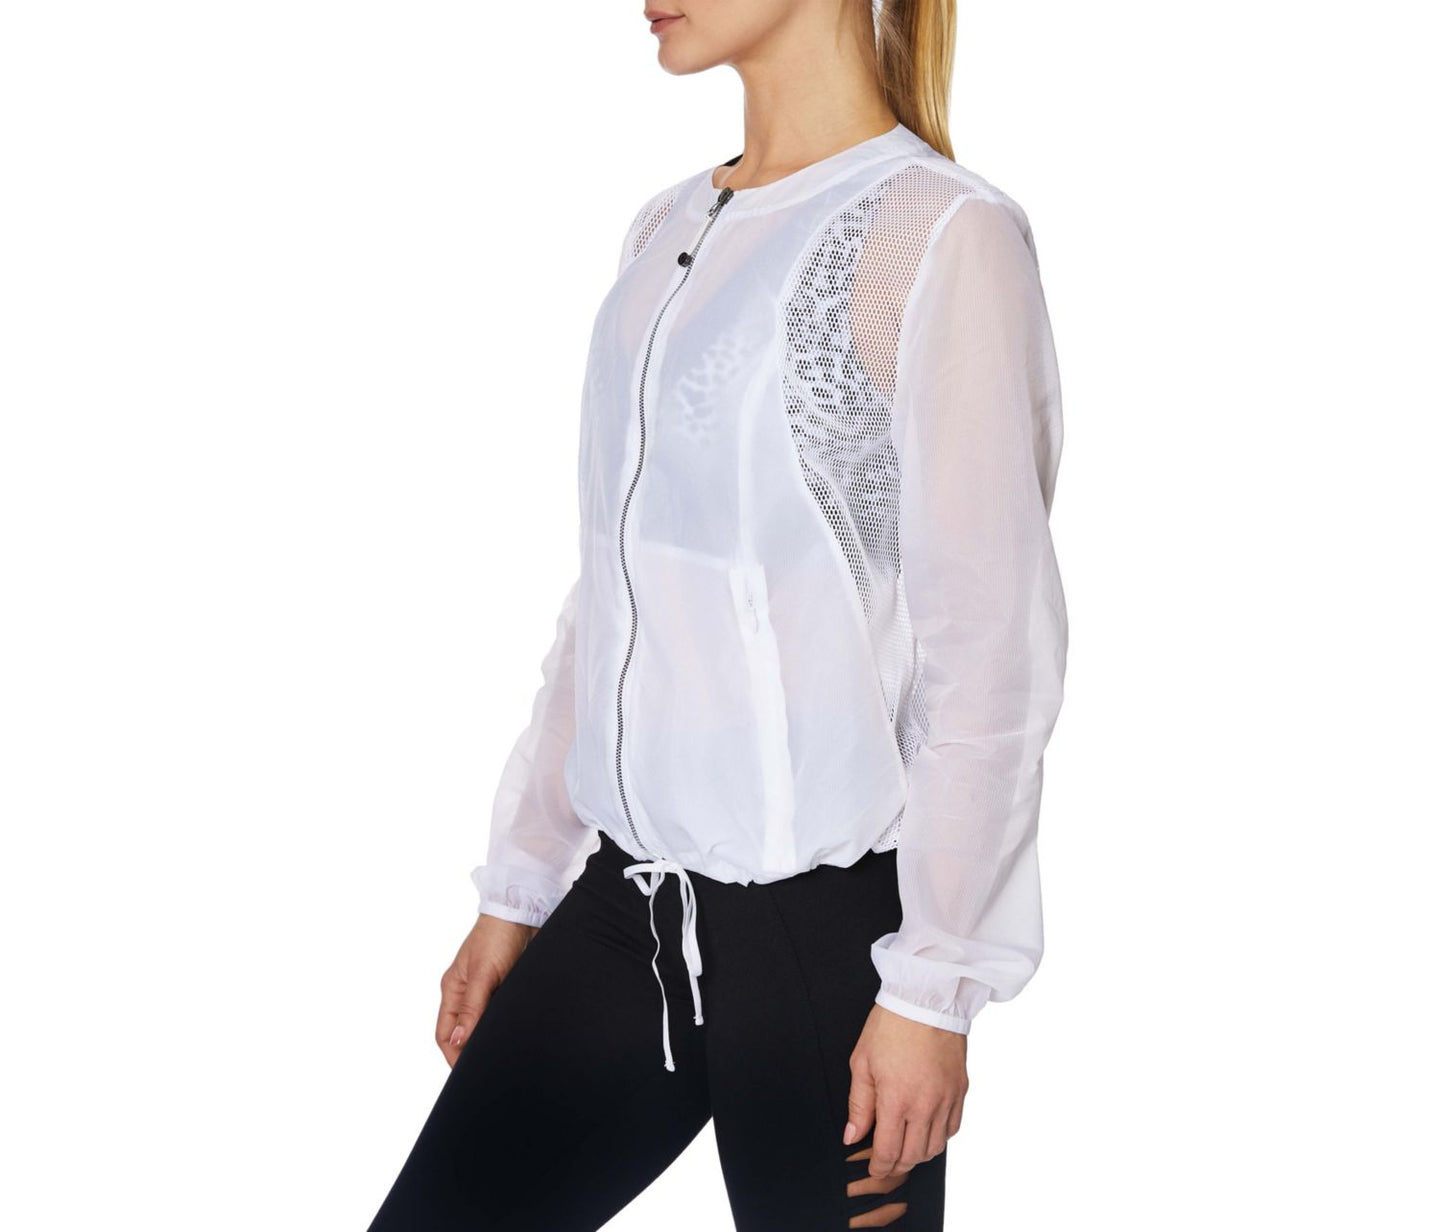 RIPSTOP MESH JACKET WHITE - APPAREL - Betsey Johnson